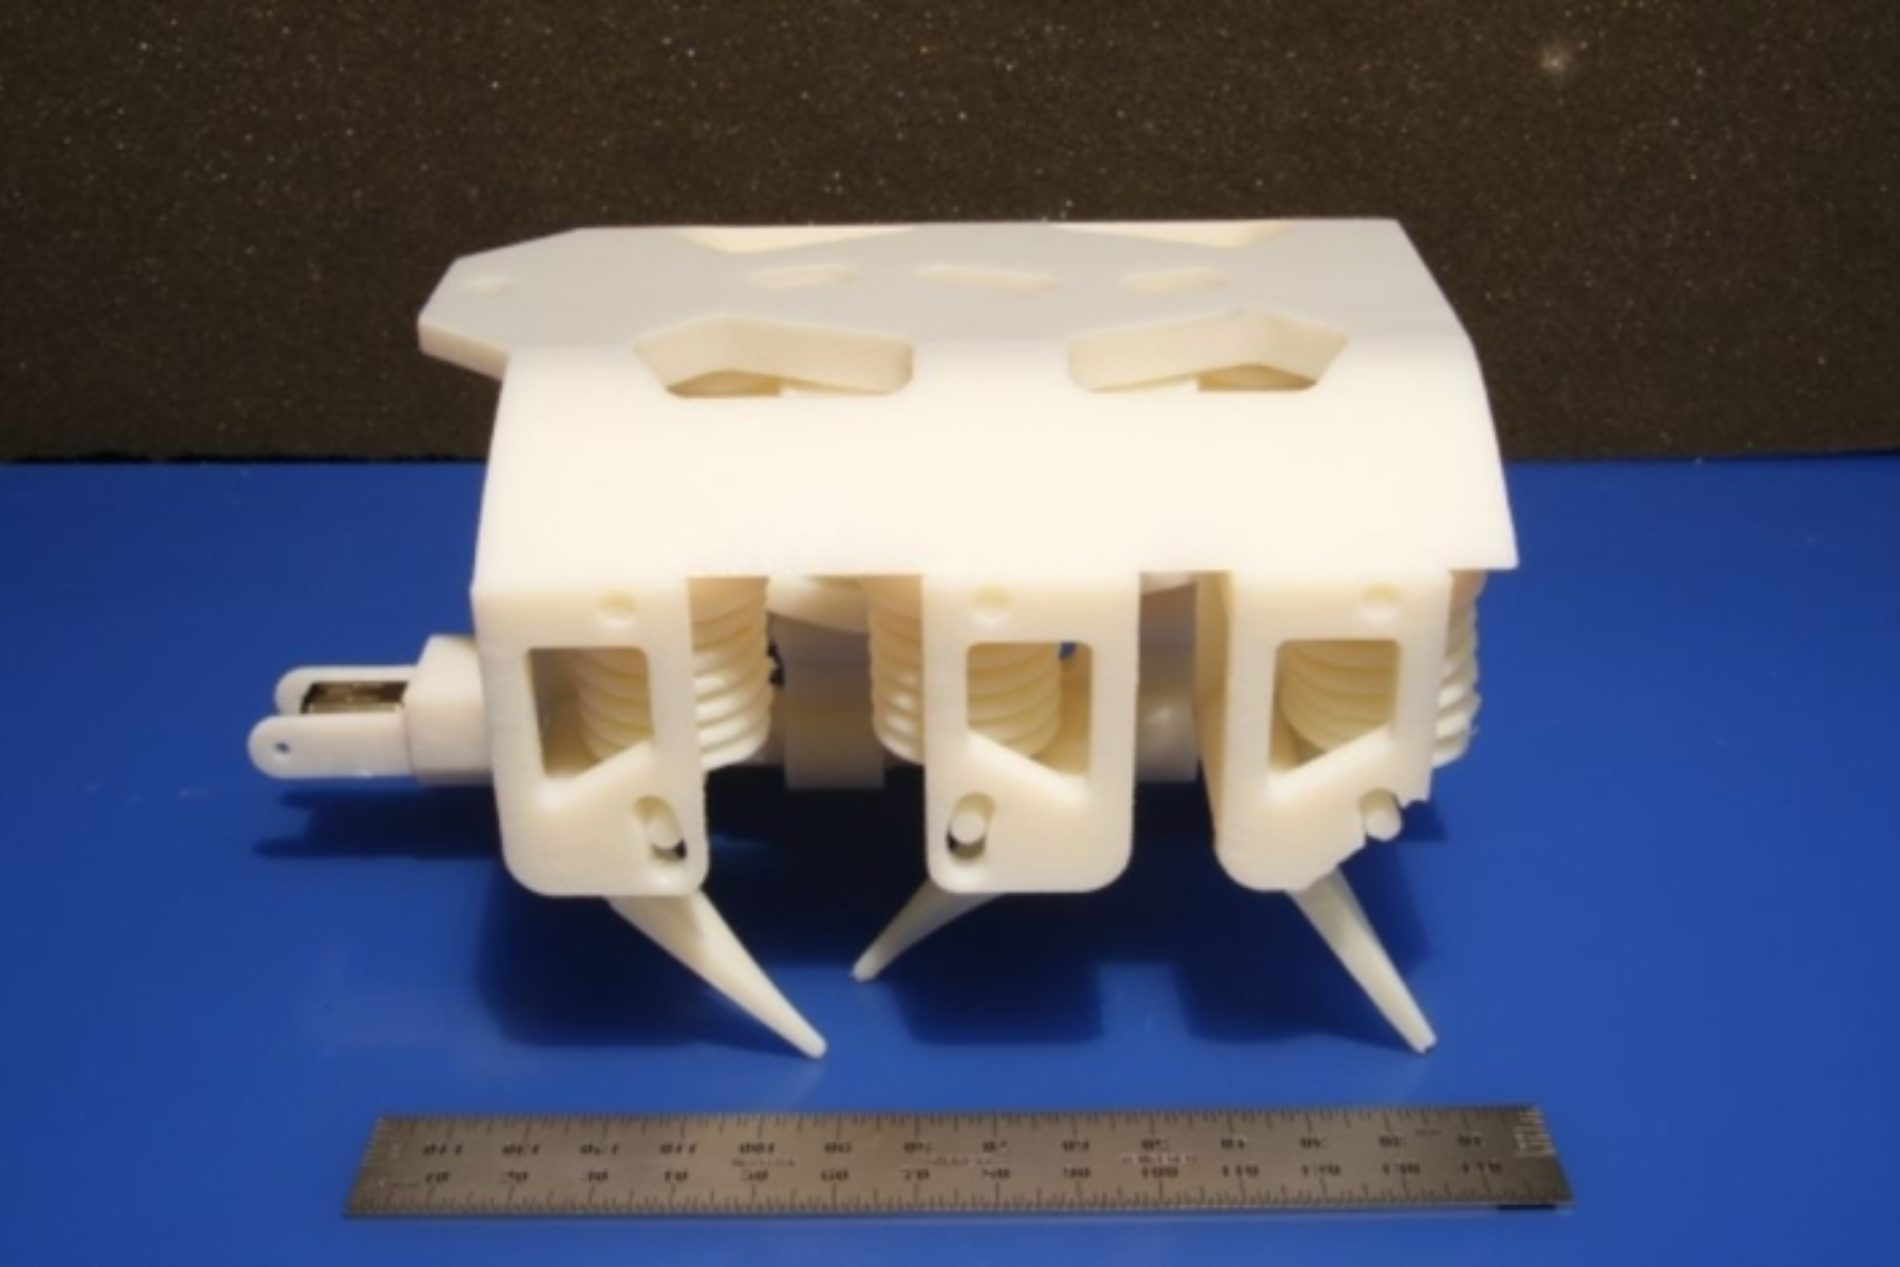 3D-printed robots walk out of the printer